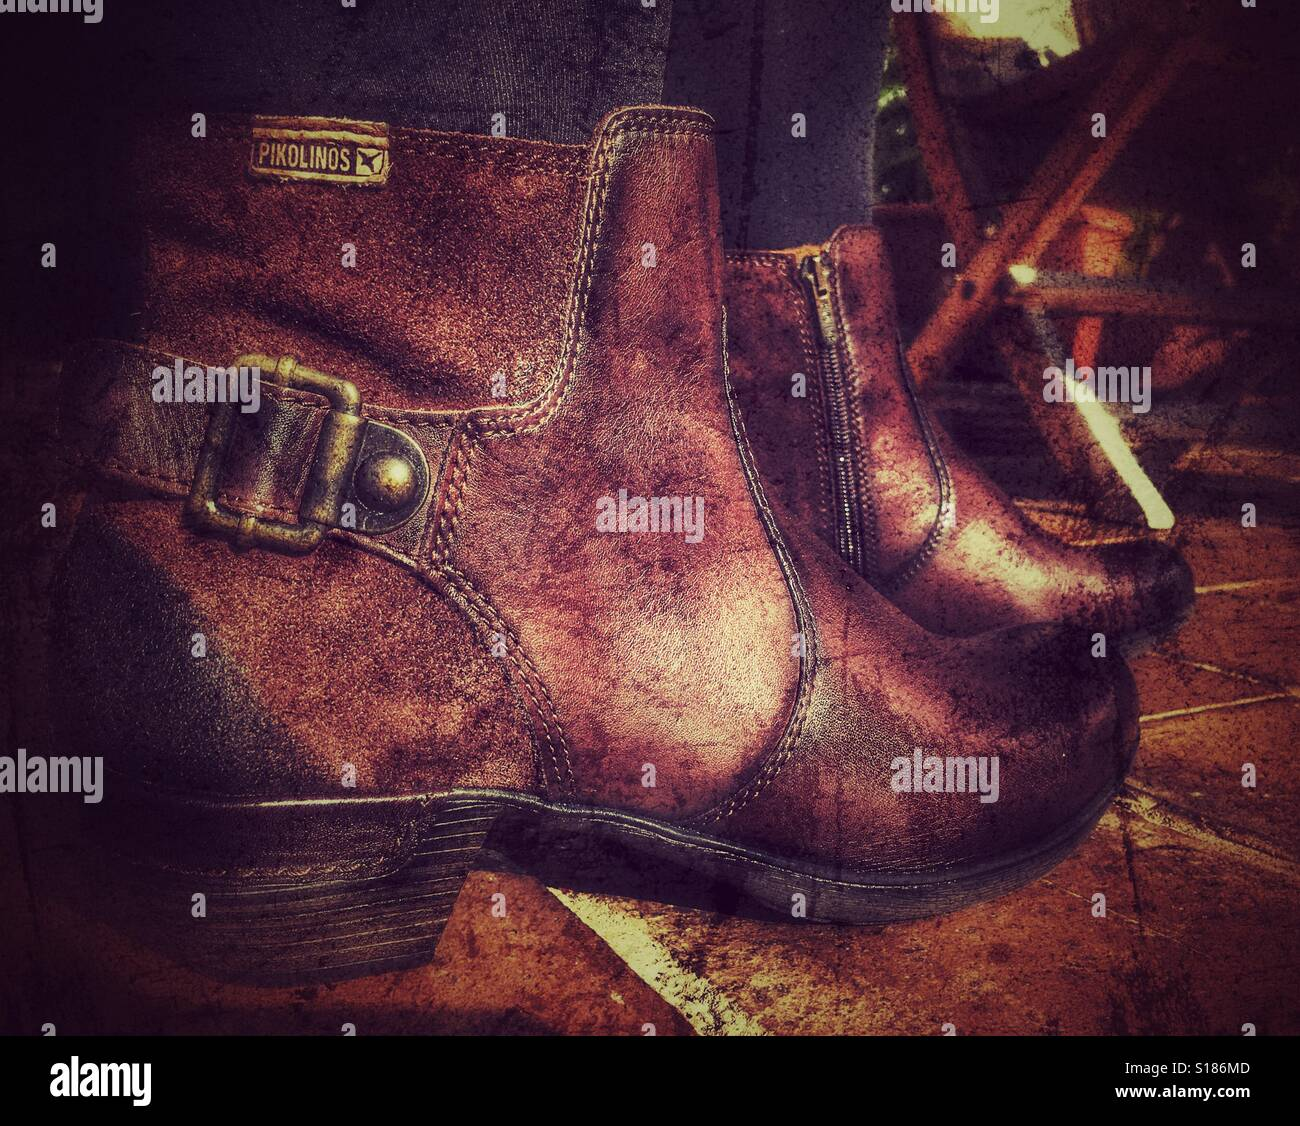 b2fd116e7acc2 New brown leather boots, Pikolinos, a popular Spanish brand Stock ...